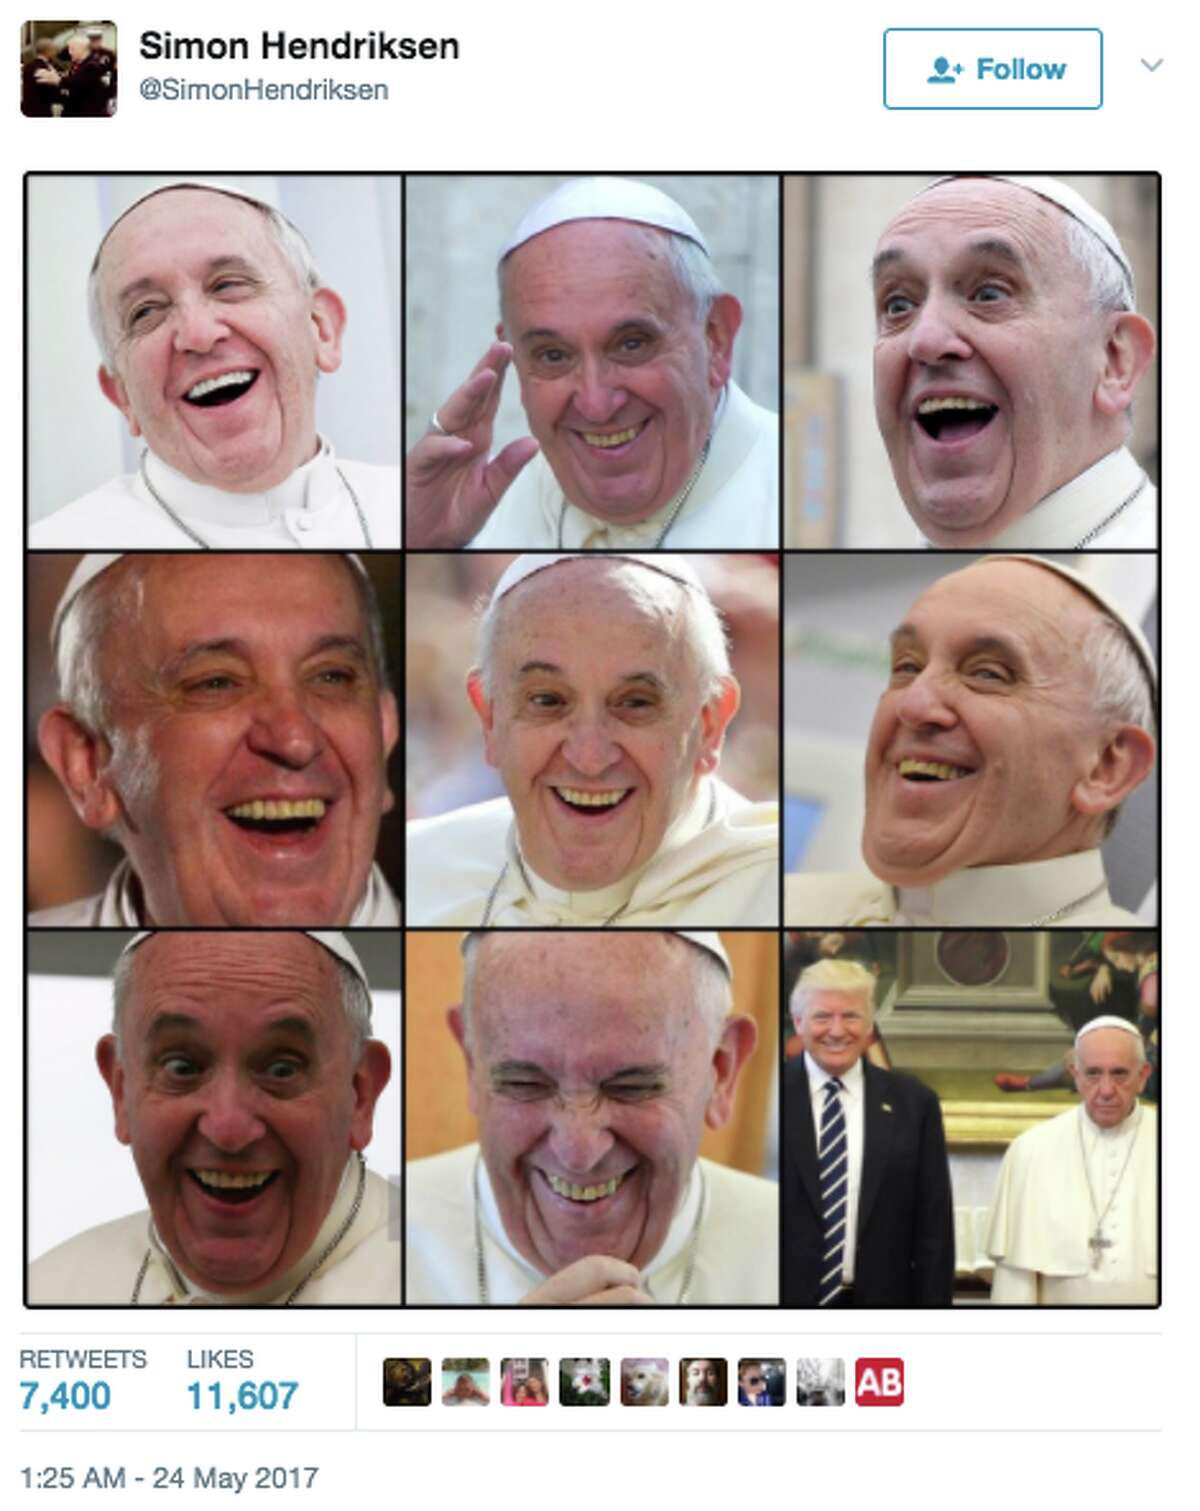 Pope Francis looking solemn as he stands with the Trumps for a photo opp has spurred a new meme.